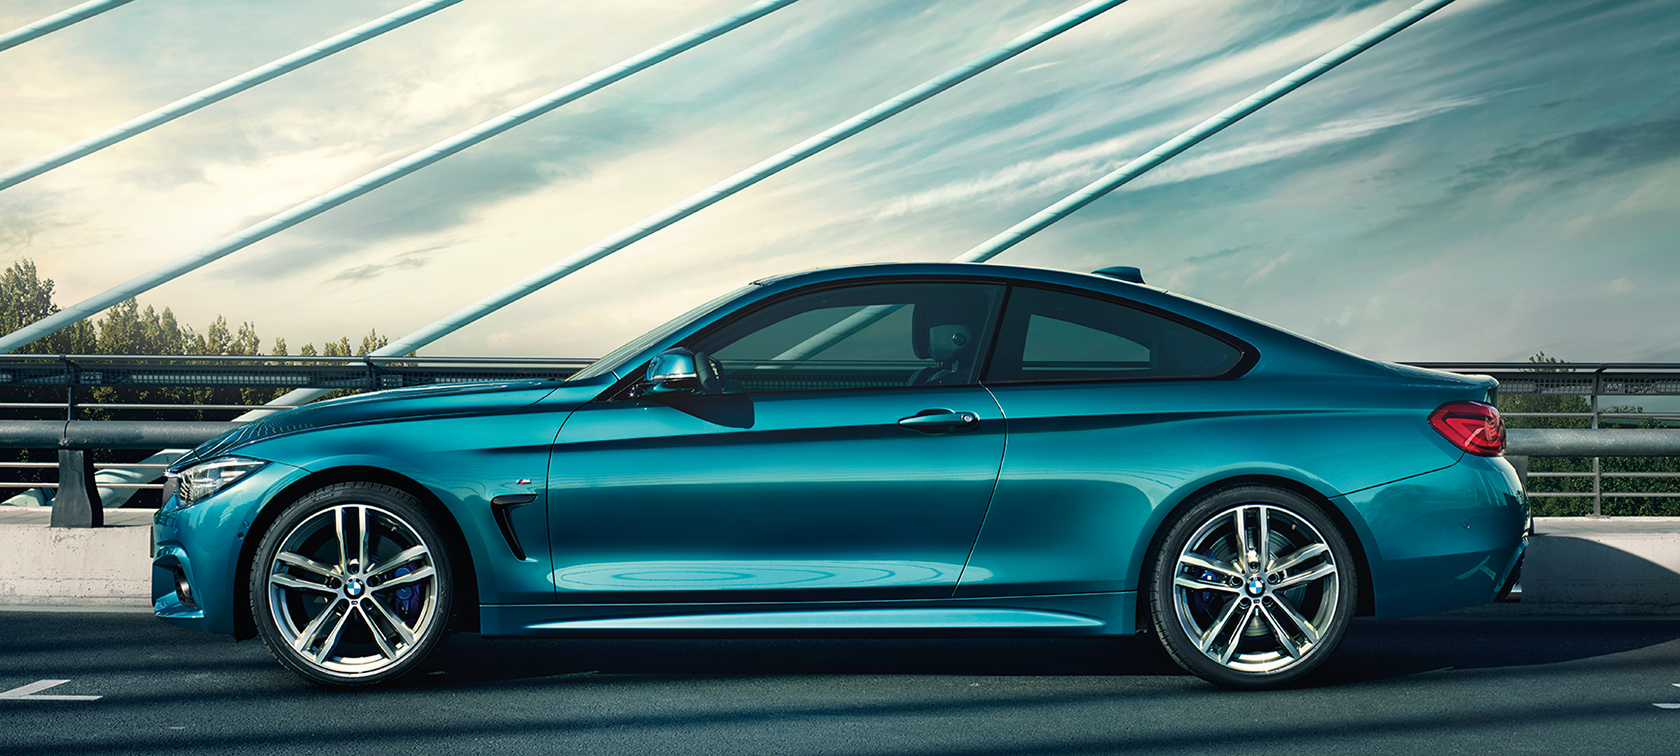 BMW 4-Series Coupe blue side view: on bridge